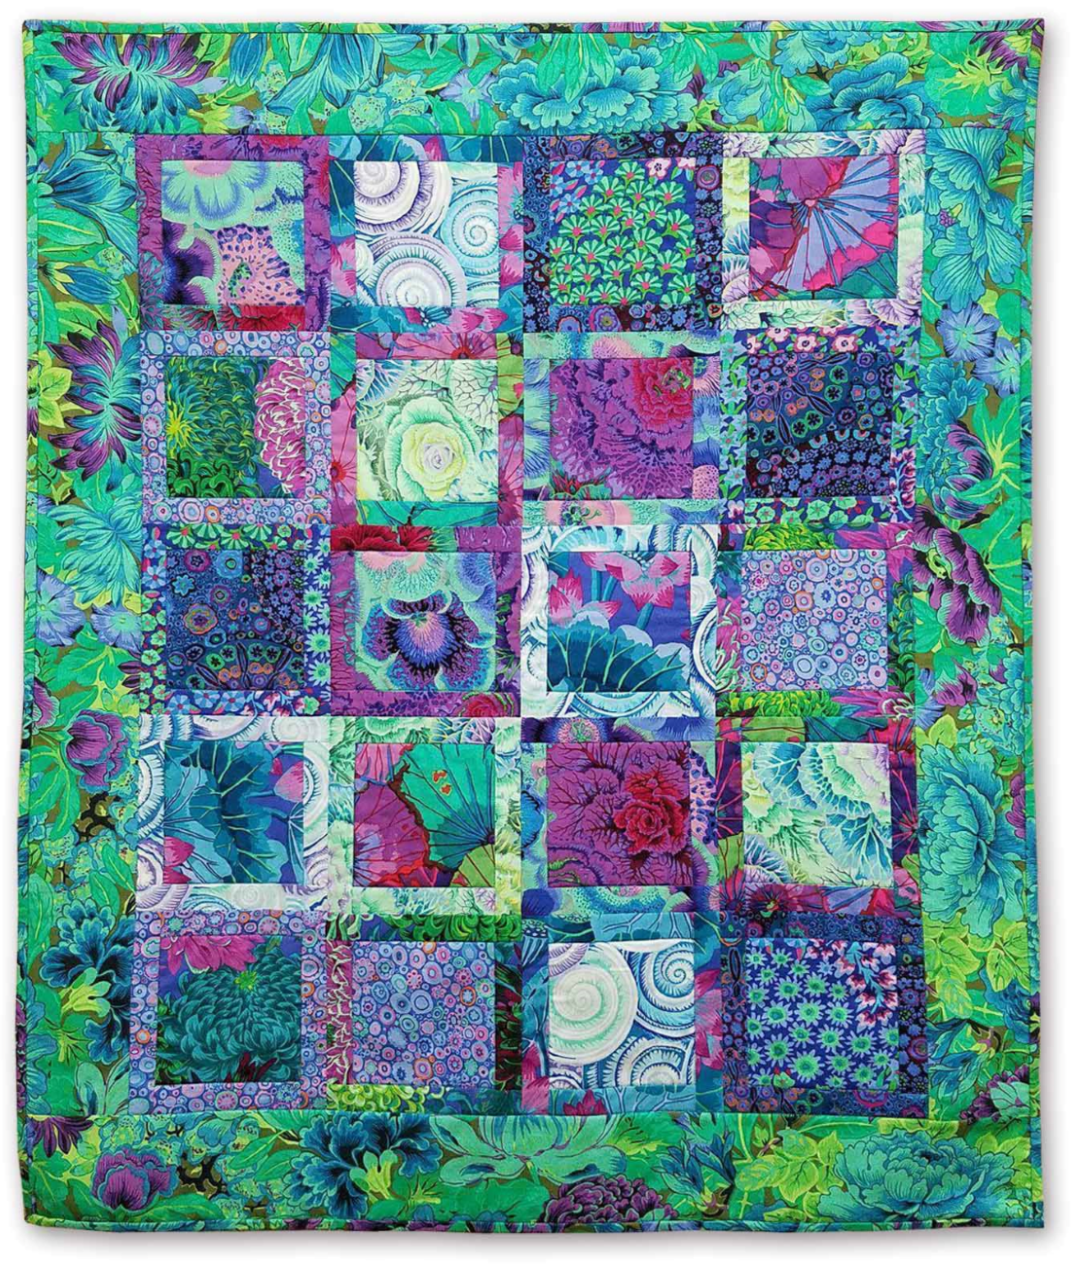 Penned in 2 - Quilt Pattern  - 10 Square/ Layer Cake Friendly